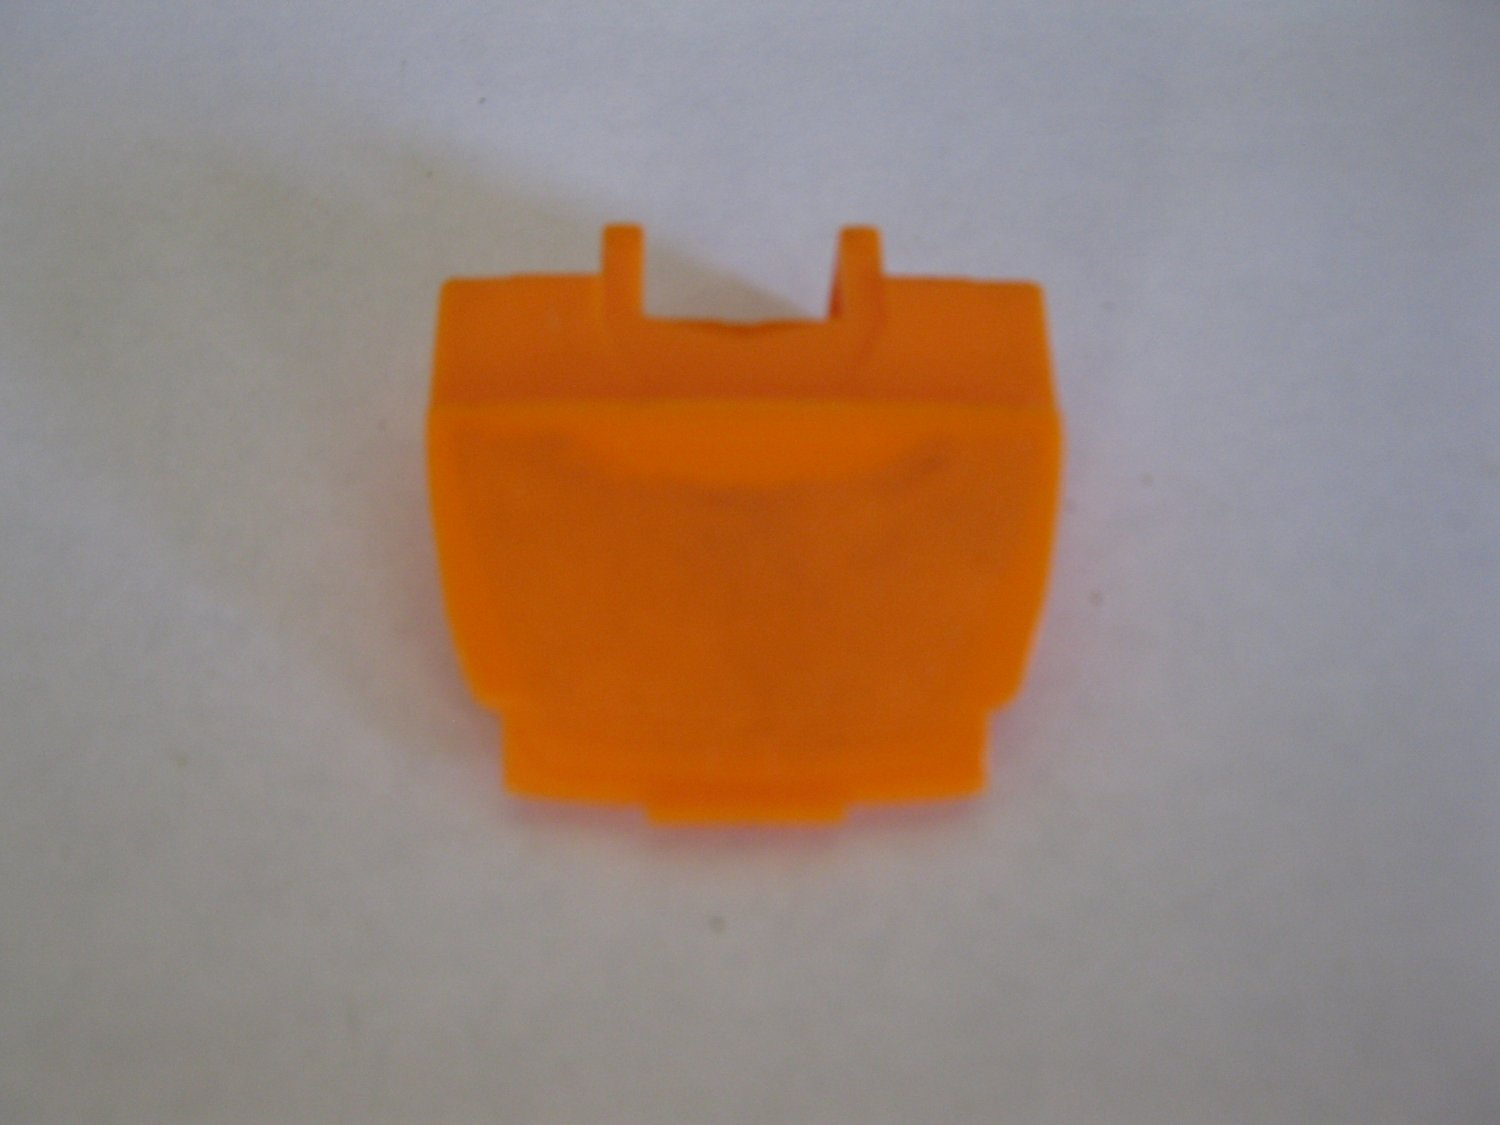 G1 Transformers Action figure part: 1986 Rodimus Prime - Orange Chest Plate